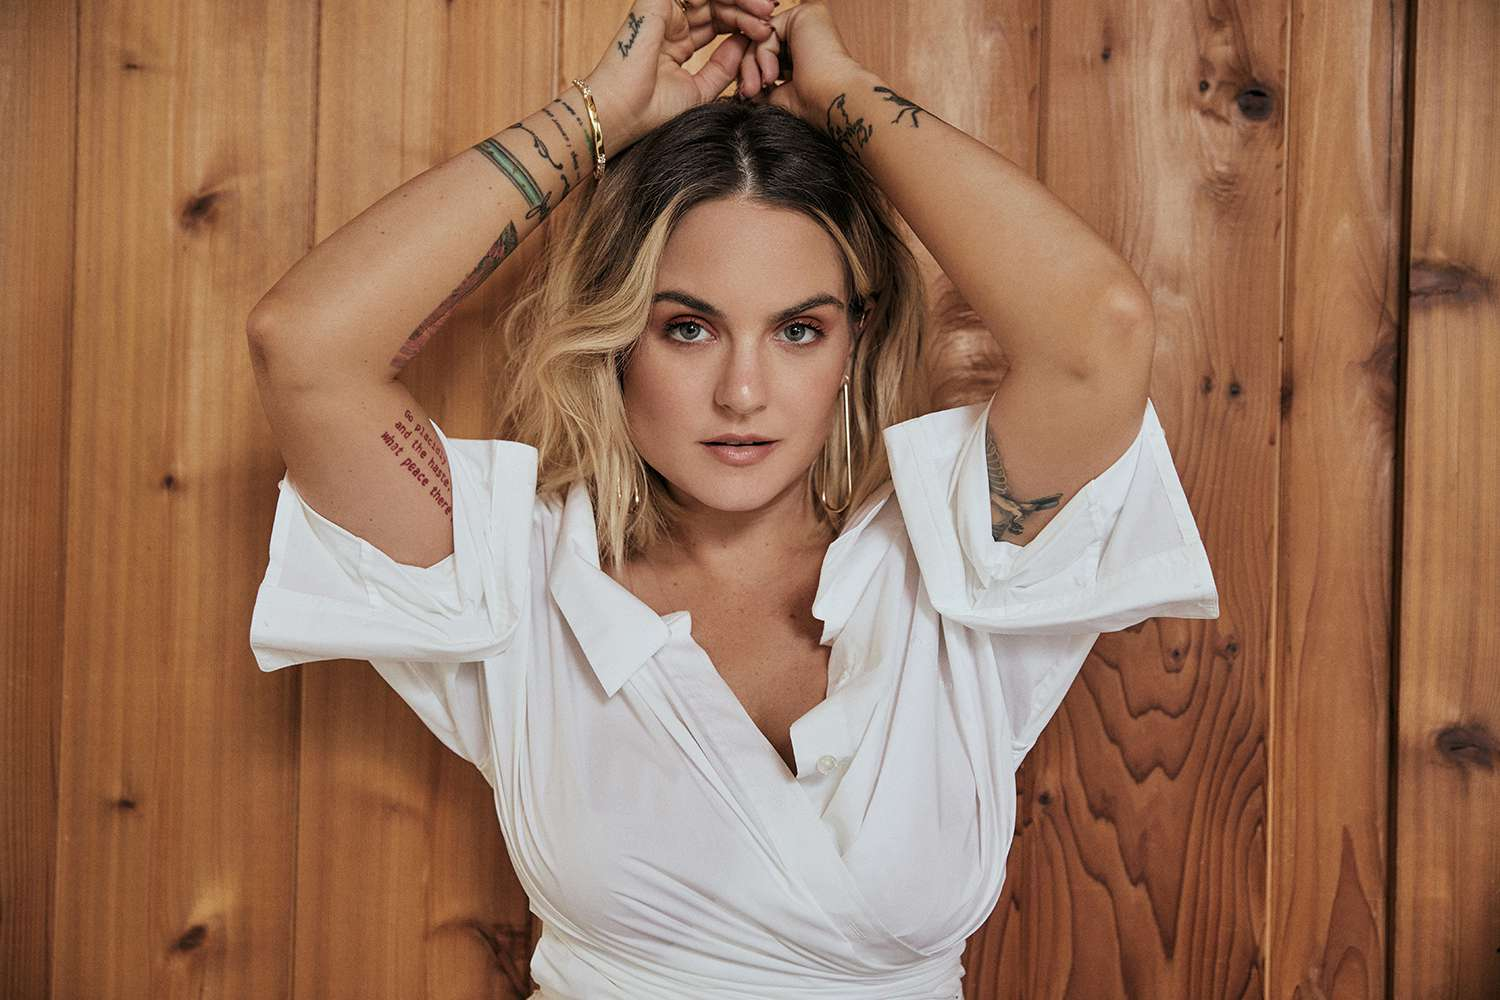 JoJo in a white top with hands above her head